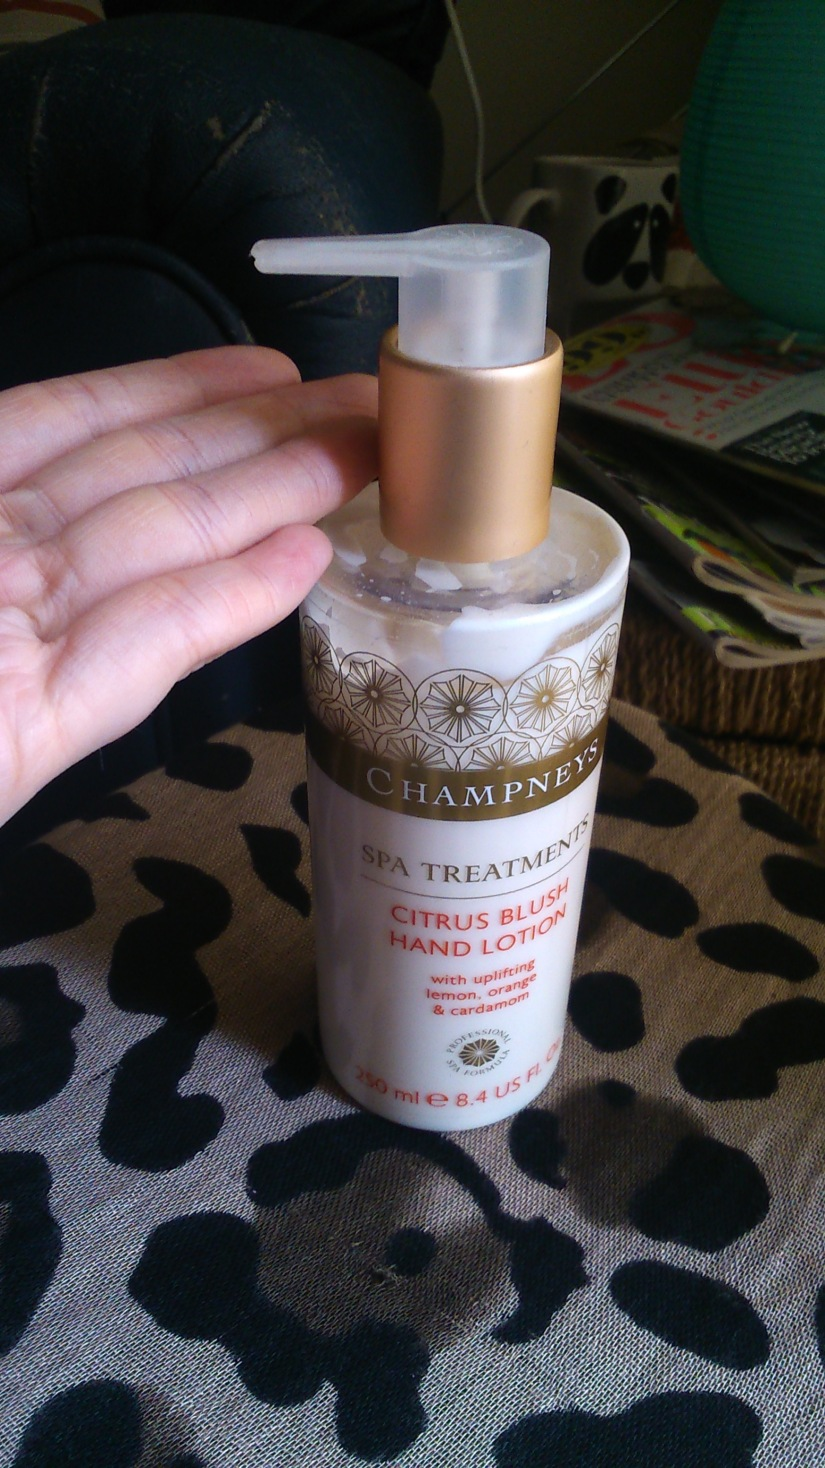 Champneys Citrus Blossom handcream